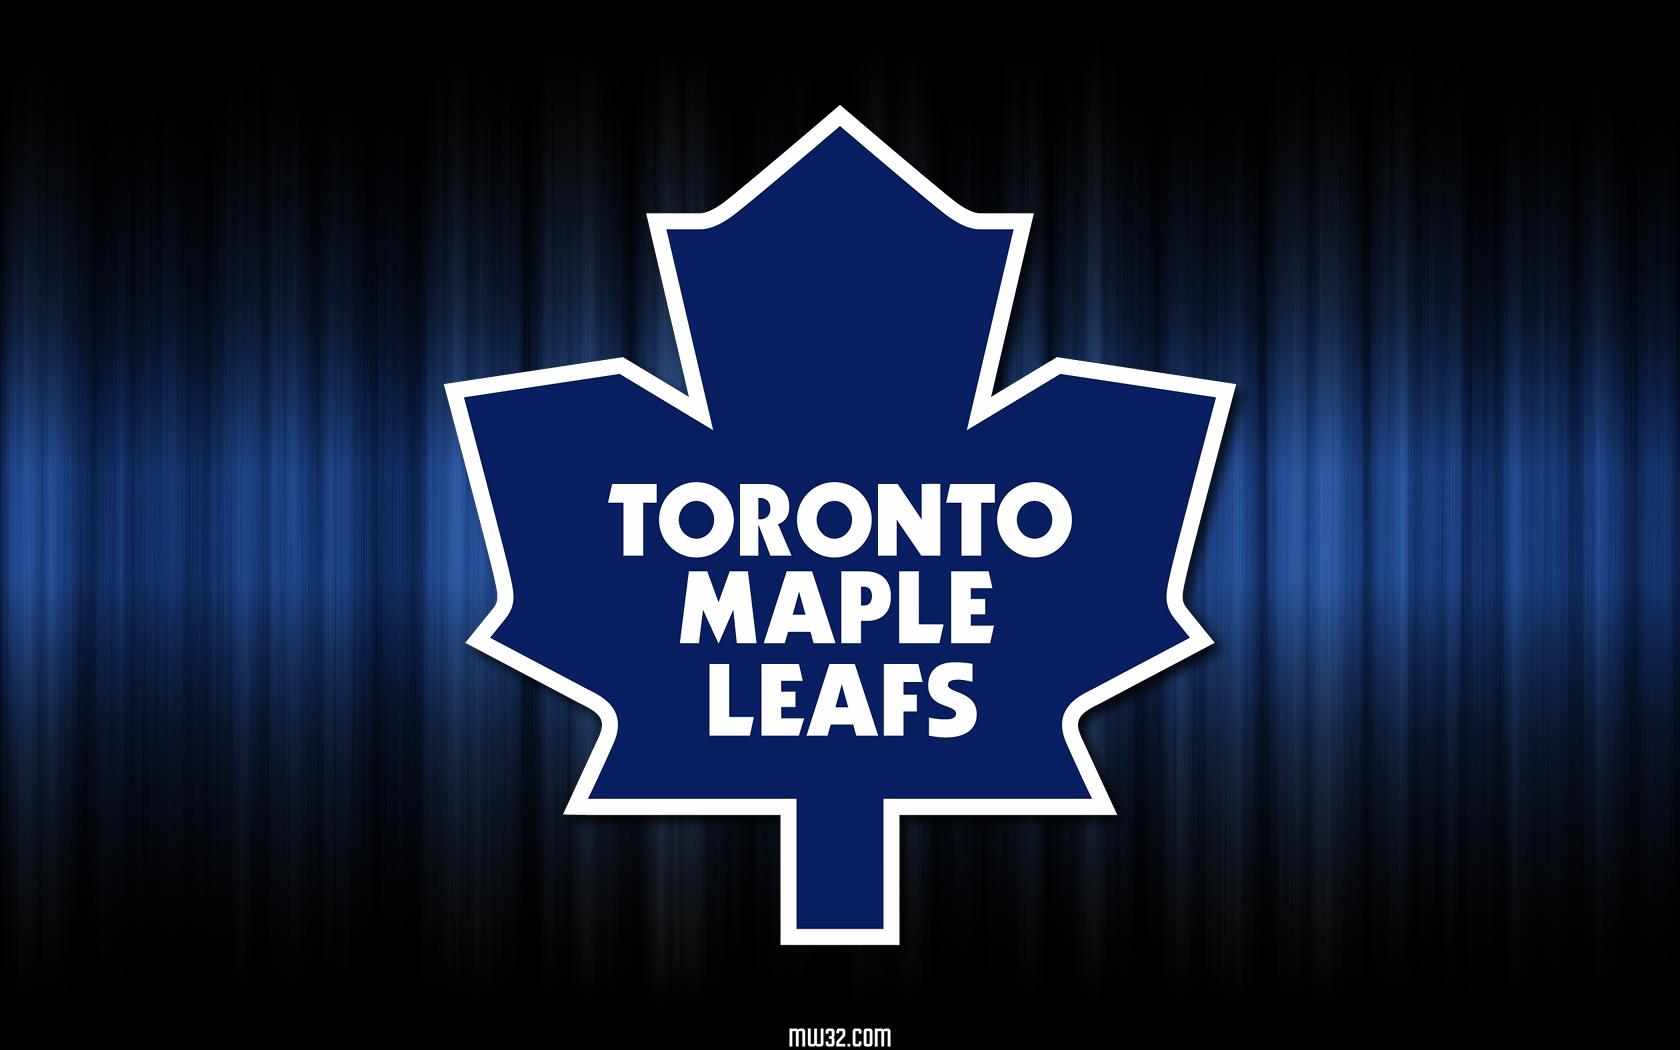 Free Download Toronto Maple Leafs Wallpapers Toronto Maple Leafs